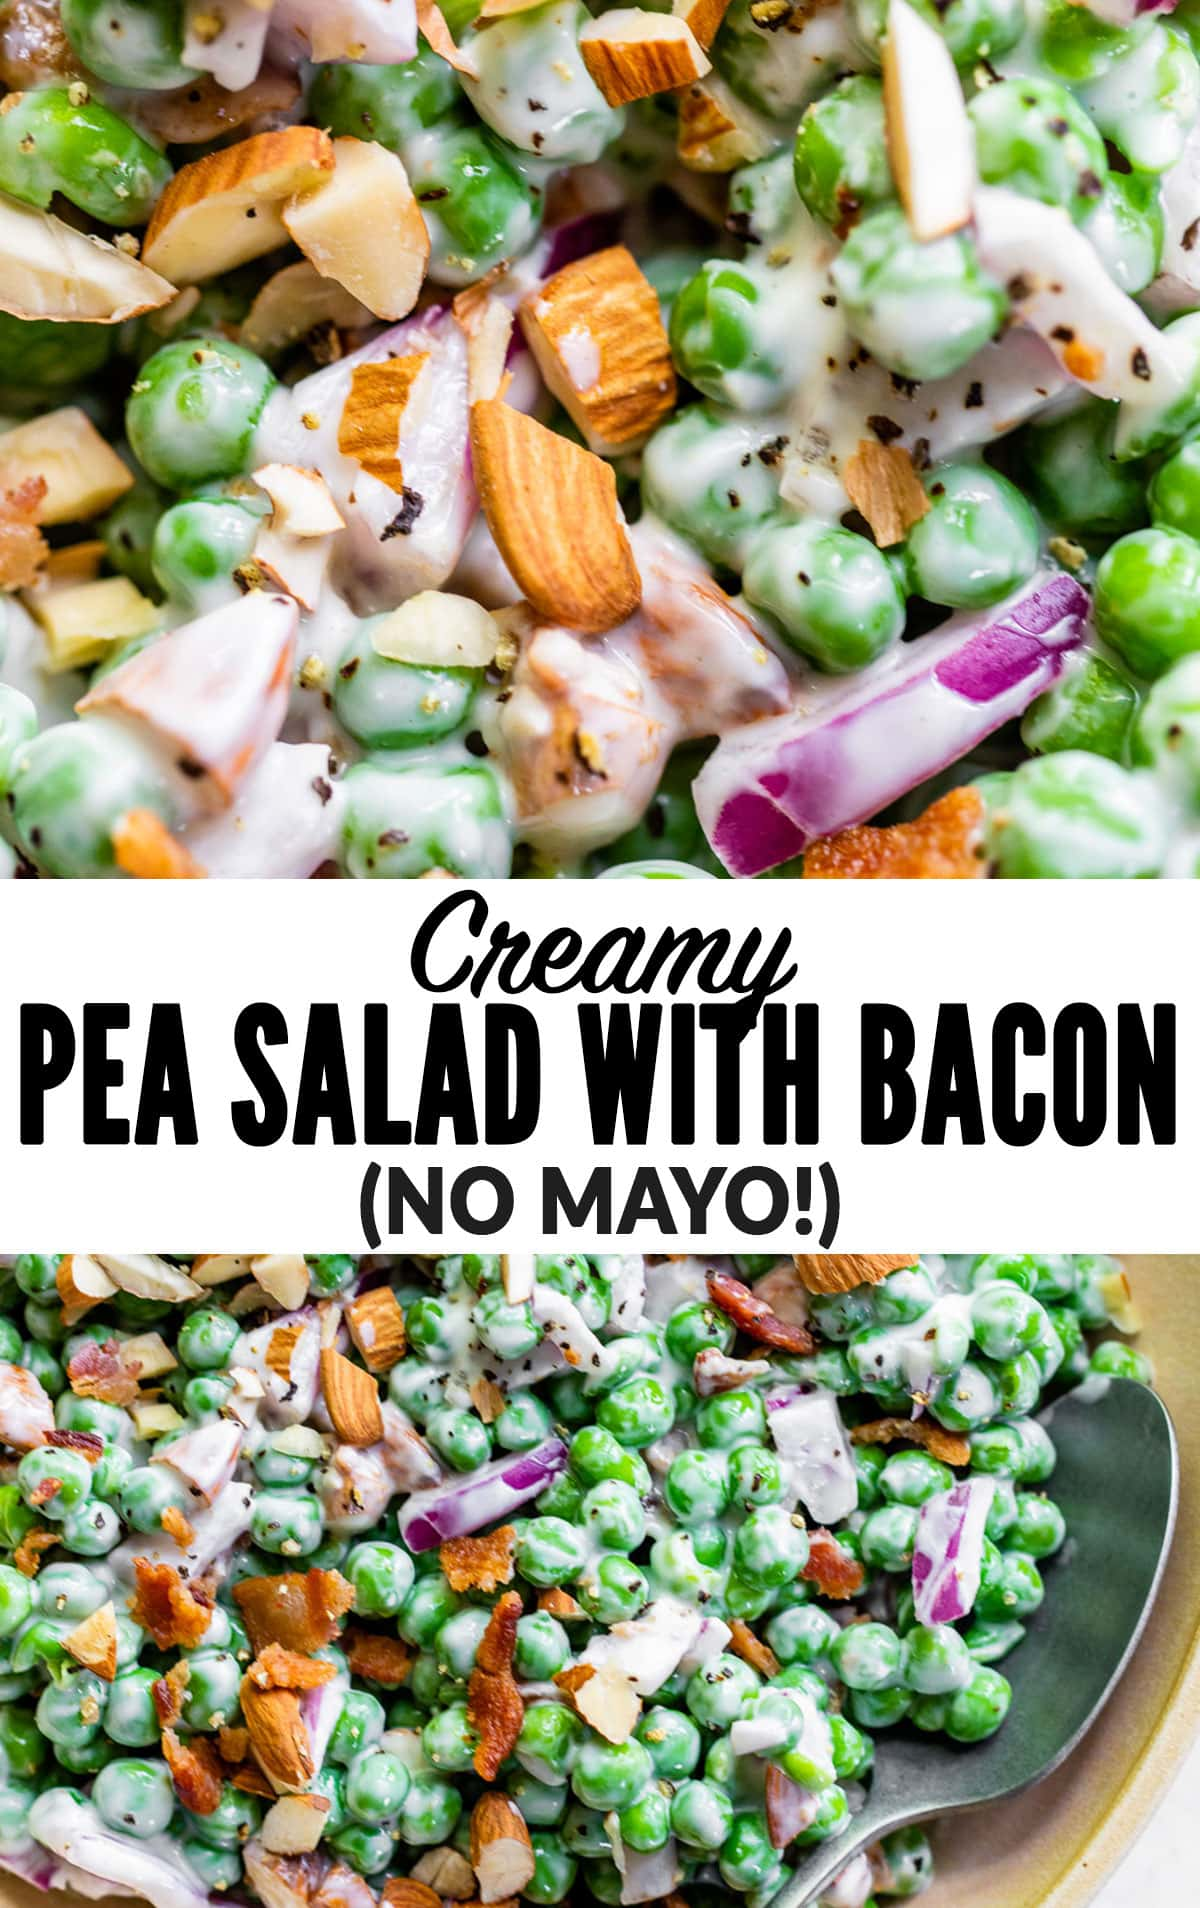 Creamy Pea Salad with Bacon and Onion